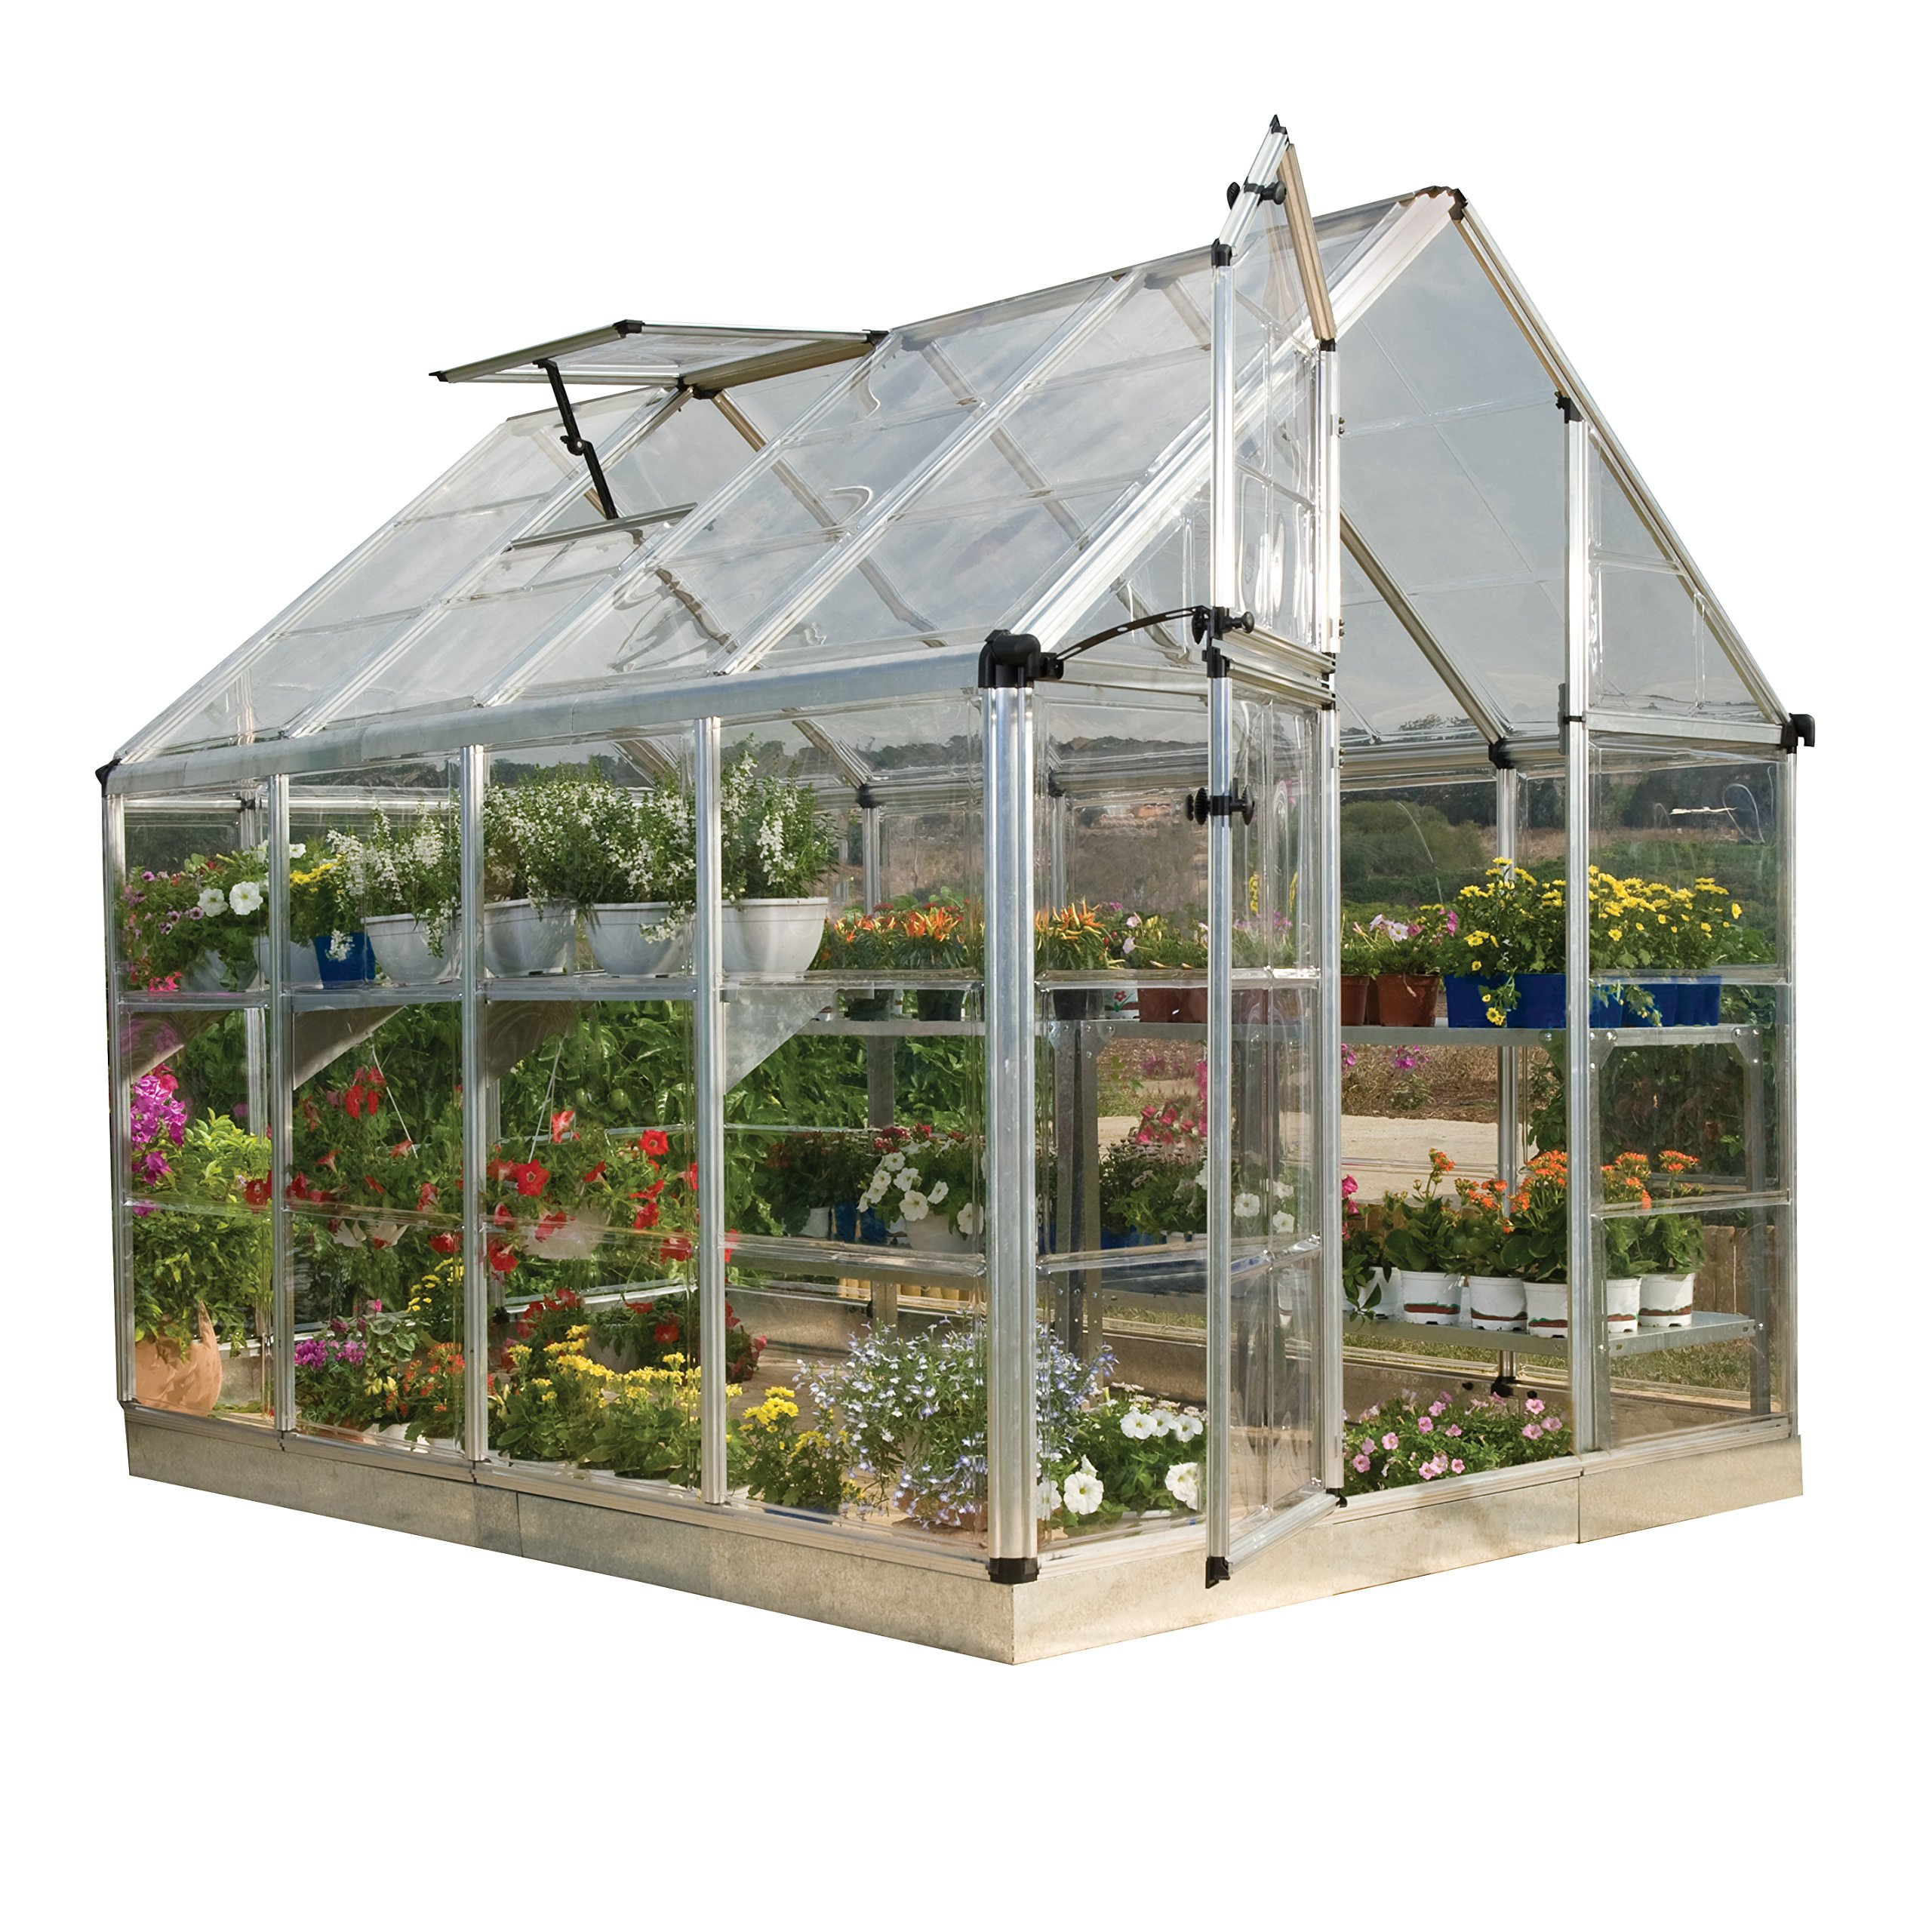 Palram Snap & Grow 6' Series Hobby Greenhouse - 6 x 8 x 7 Silver by Palram